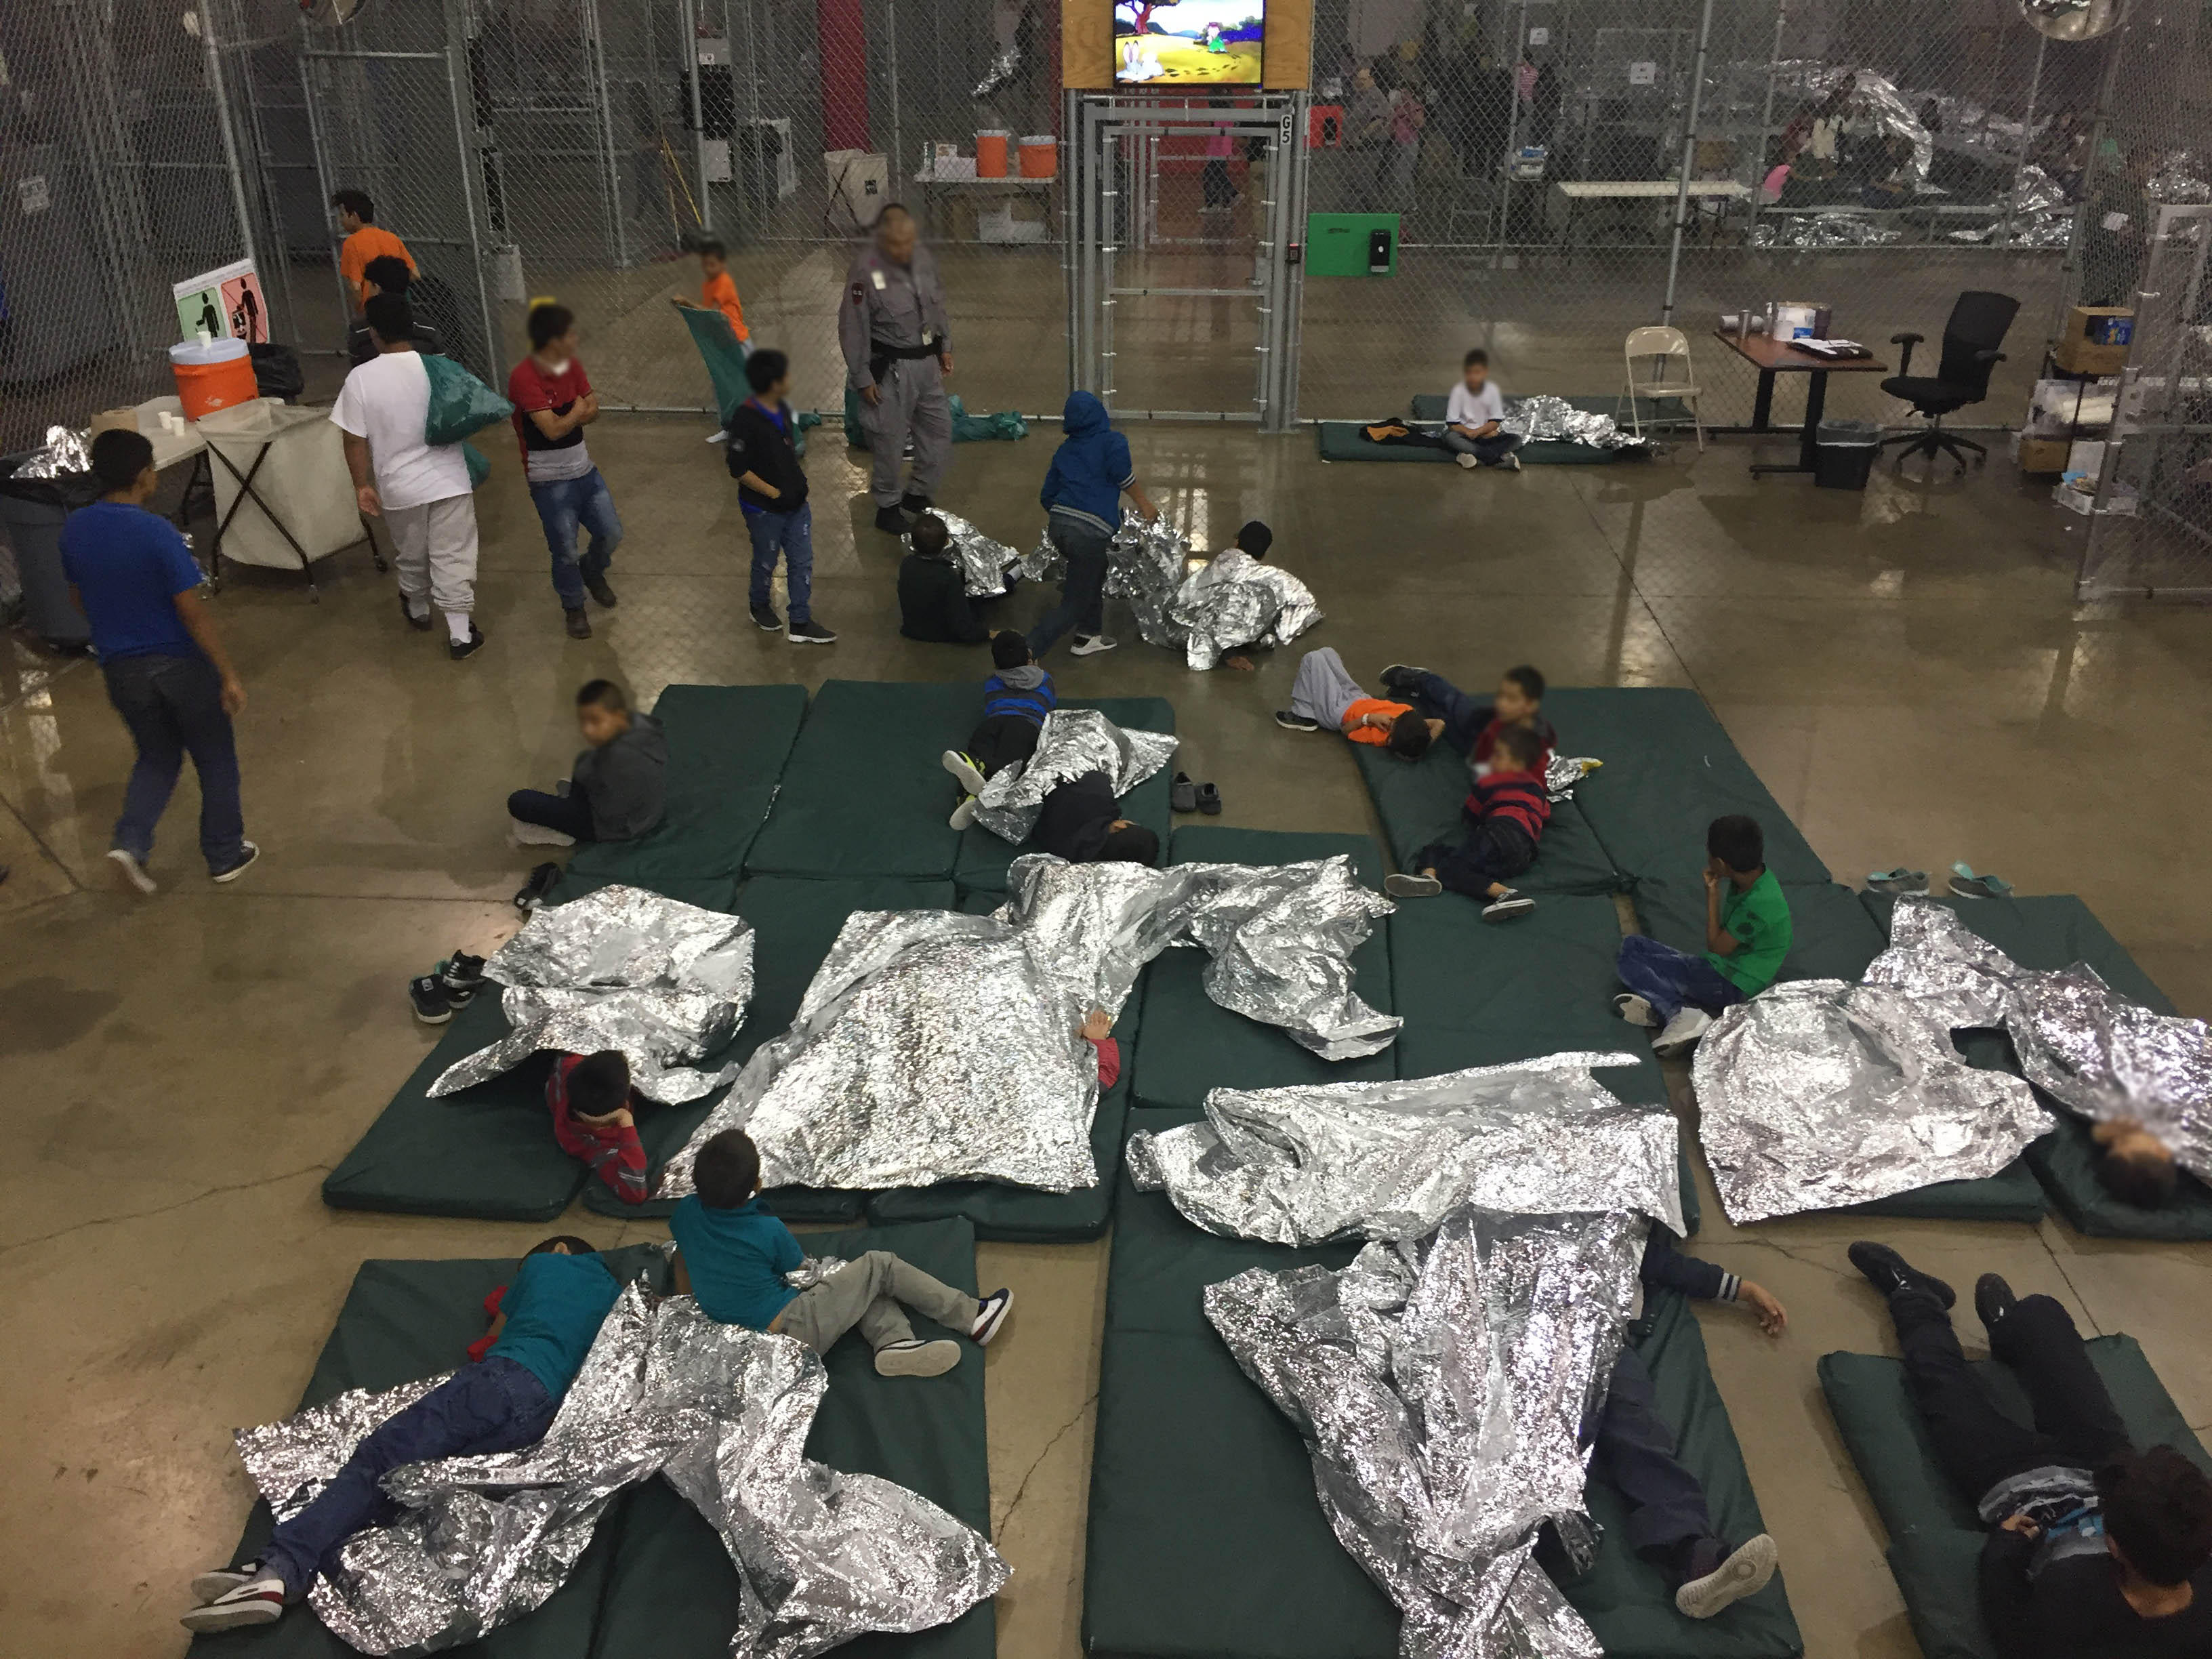 Texas Kids Werent Kept Out Of Special >> Inside The Border Patrol Facility In Mcallen Texas Housing